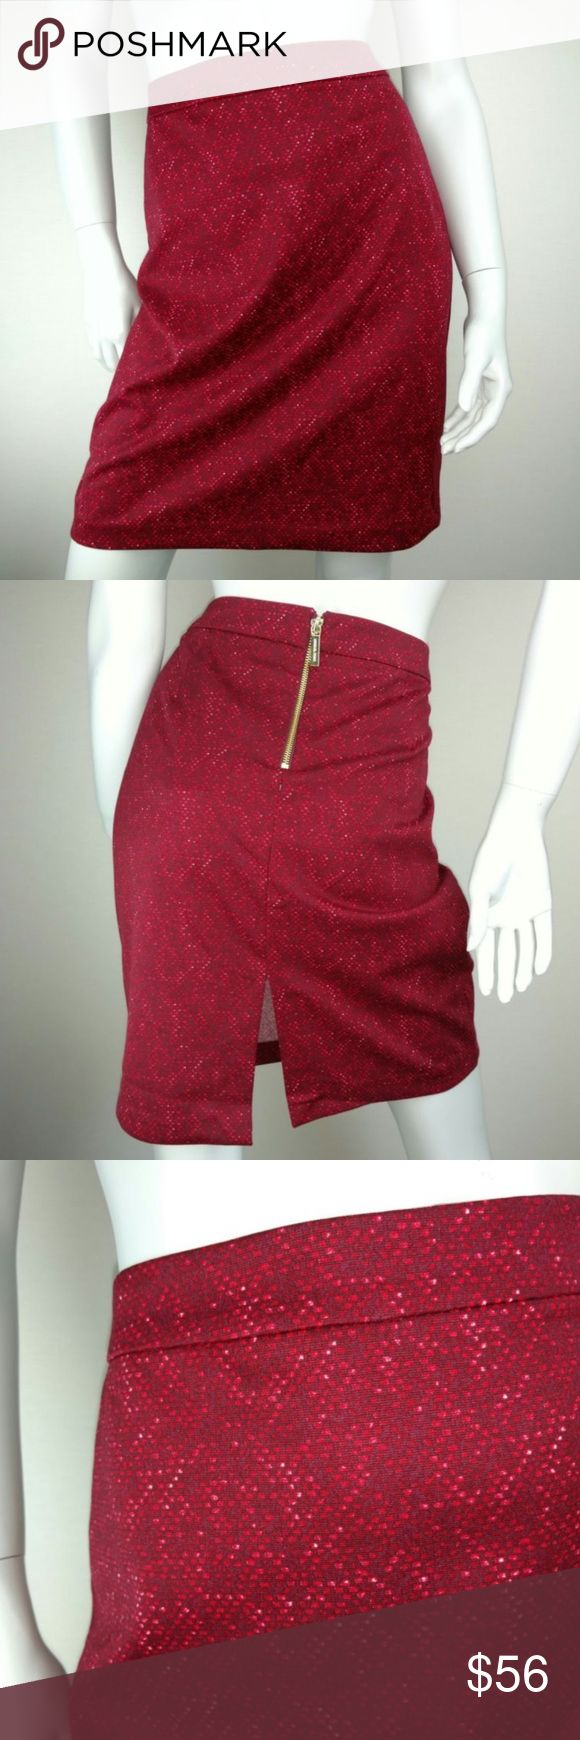 Michael Kors red snake geometric pencil skirt Brand new with $100 tags. Sizes available: 8 & 10. Gold back zipper. Small slit in the back. Absolutely right on trend and adorable. Michael Kors red snake geometric pencil skirt. Michael Kors Skirts Pencil